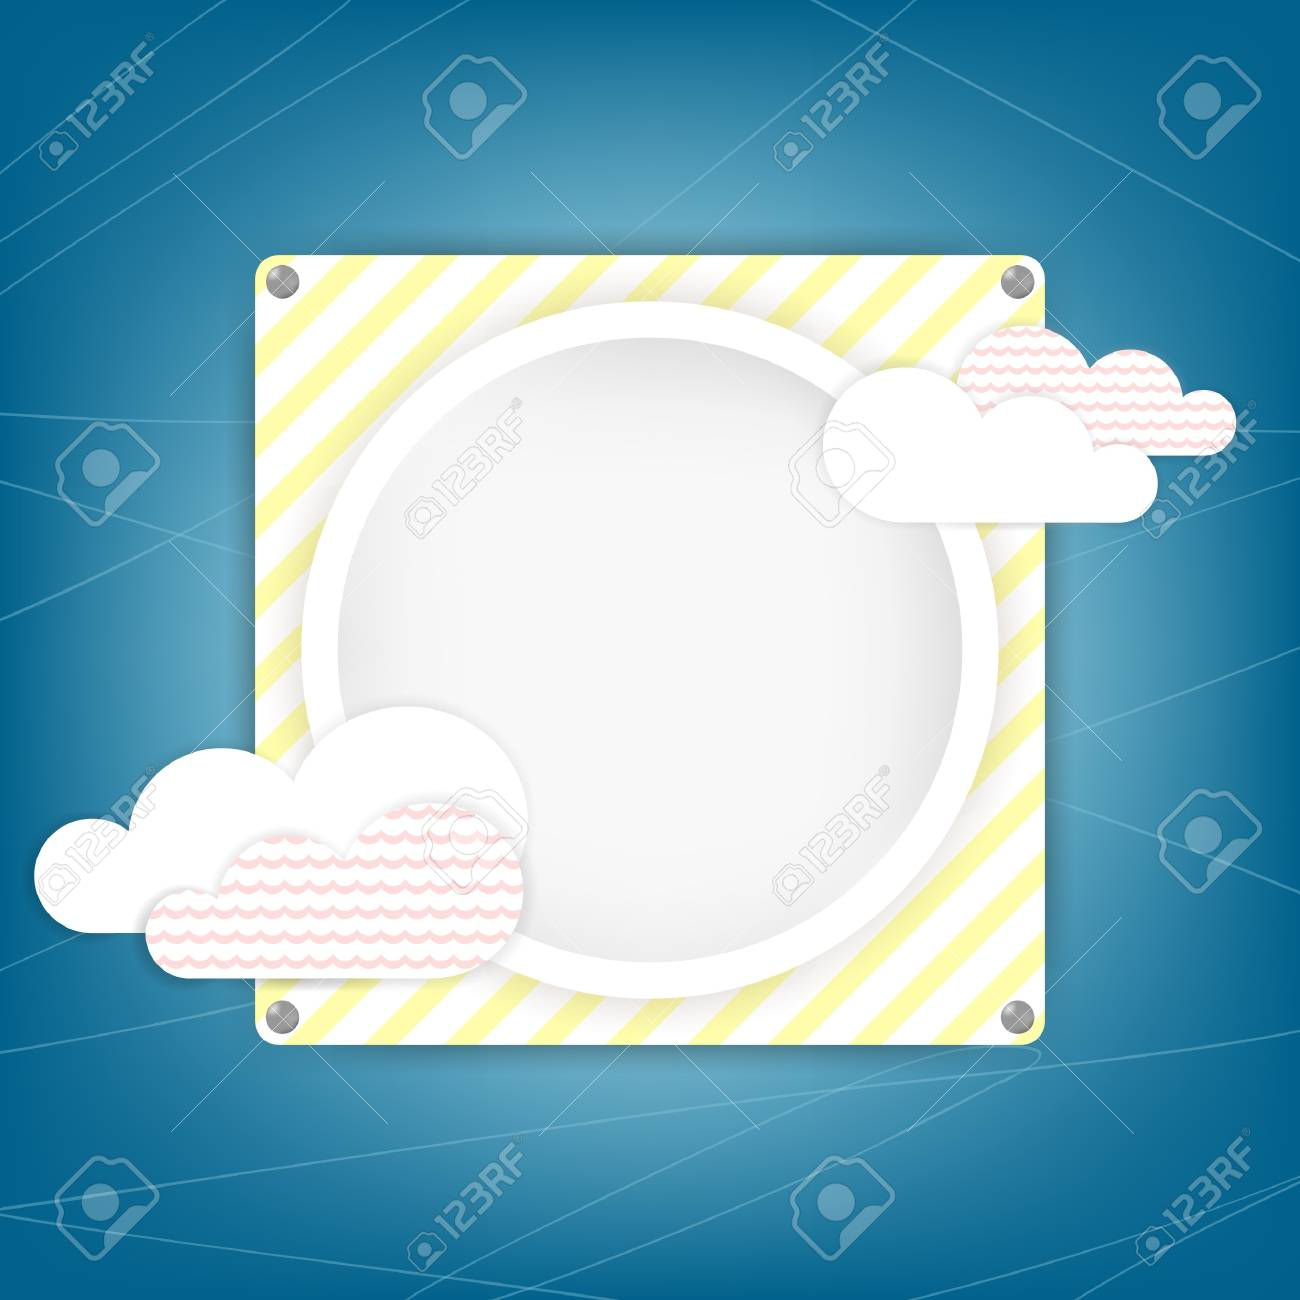 Square  blue vintage background and graphic elements with place for text or image Stock Vector - 18093230